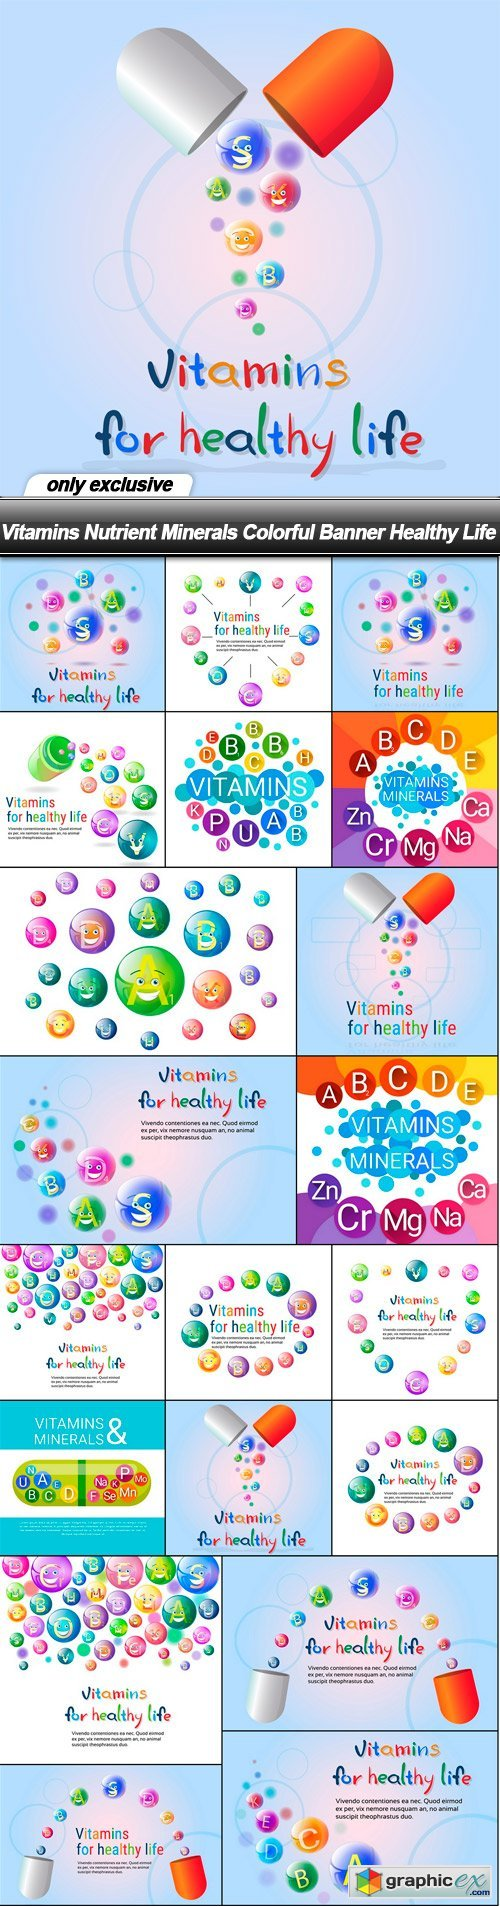 Vitamins Nutrient Minerals Colorful Banner Healthy Life - 20 EPS